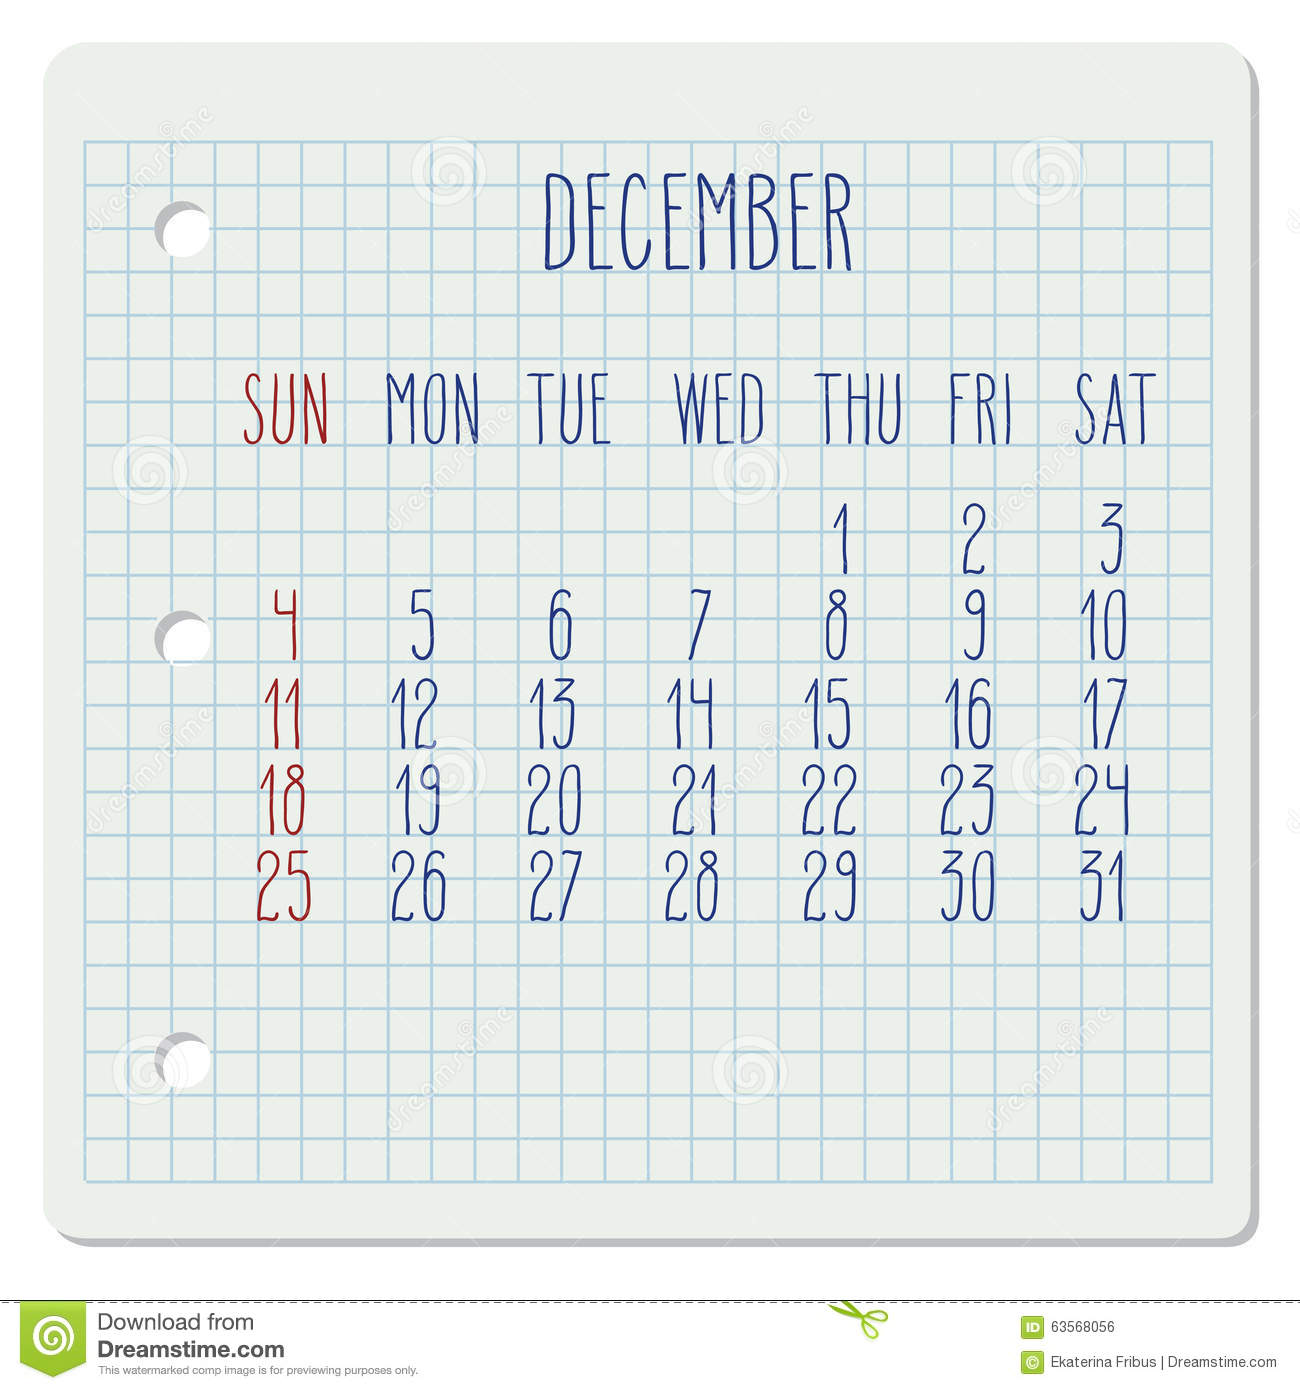 Weekly Calendar Vector : December monthly calendar stock vector illustration